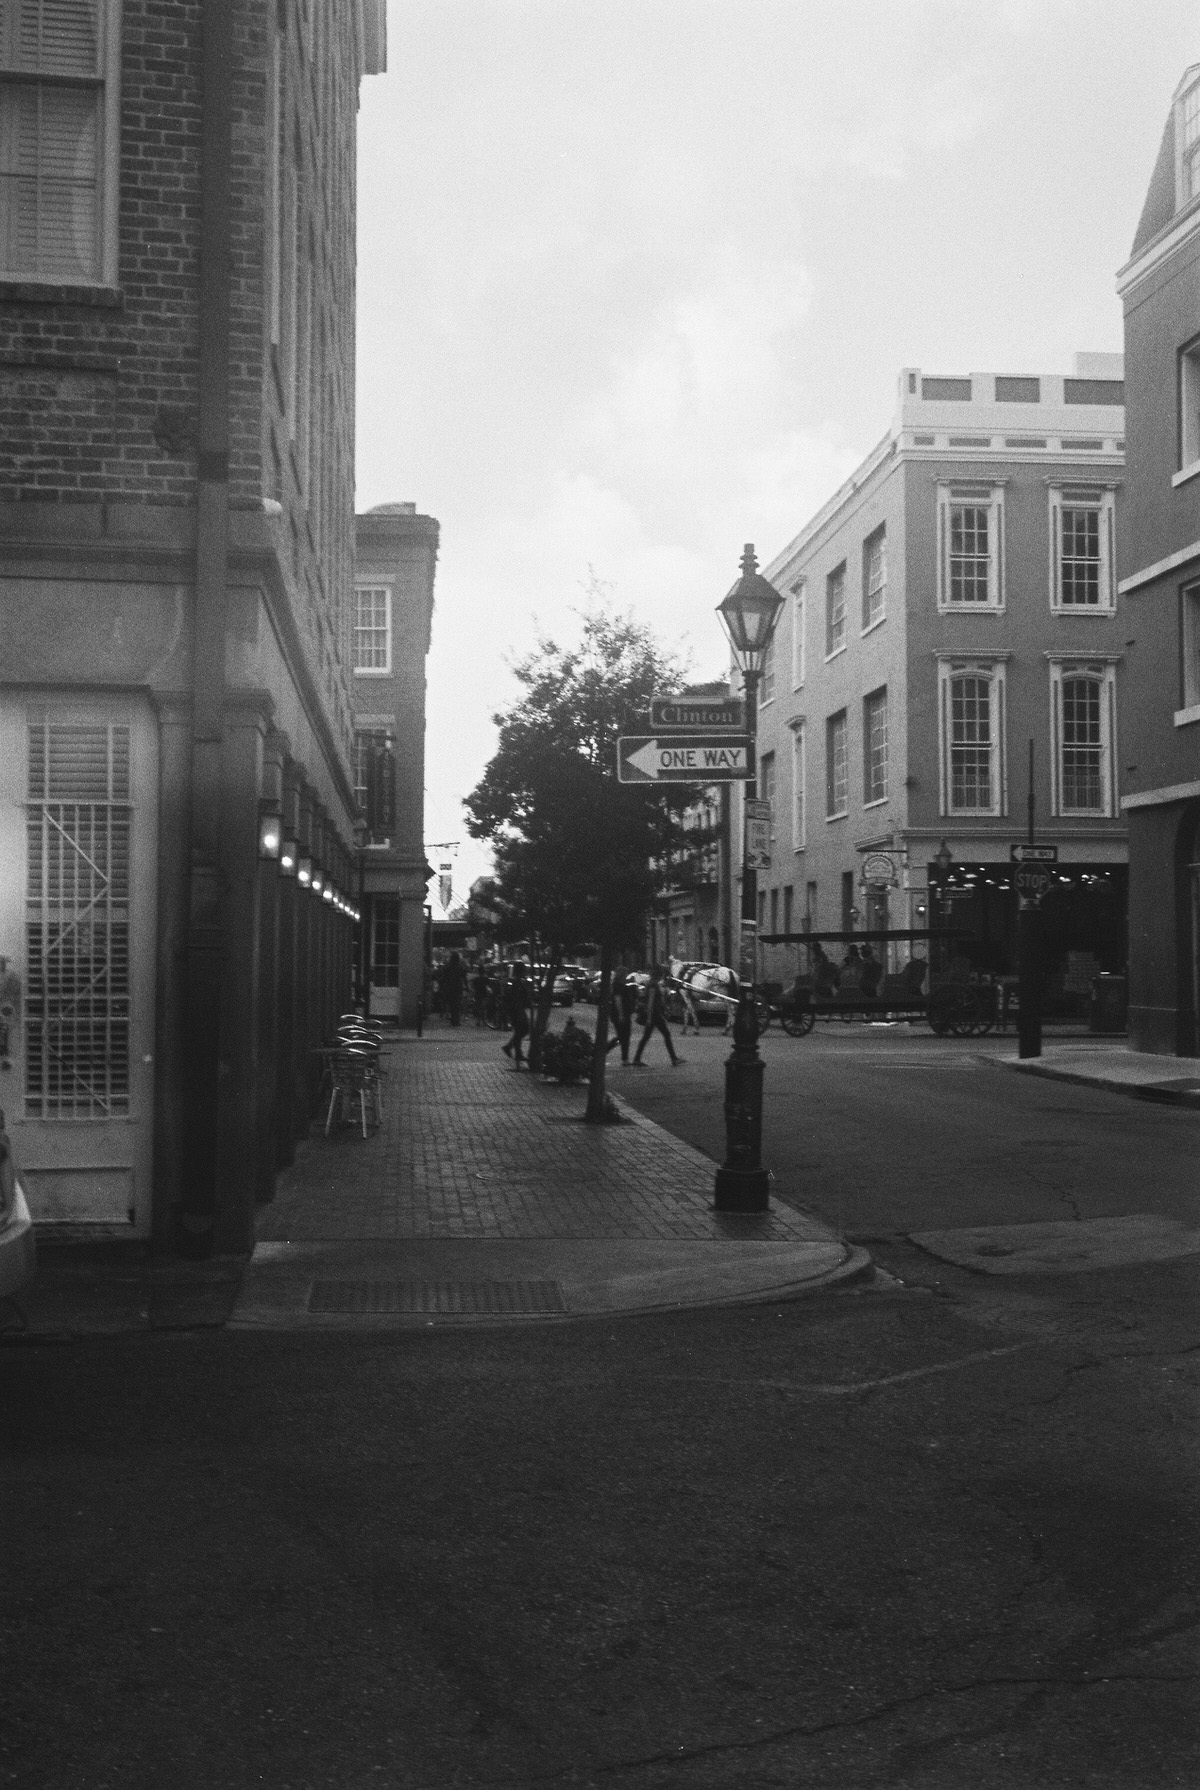 New-Orleans-Louisiana-black-and-white-fine-art-photography-by-Studio-L-photographer-Laura-Schneider-_017027